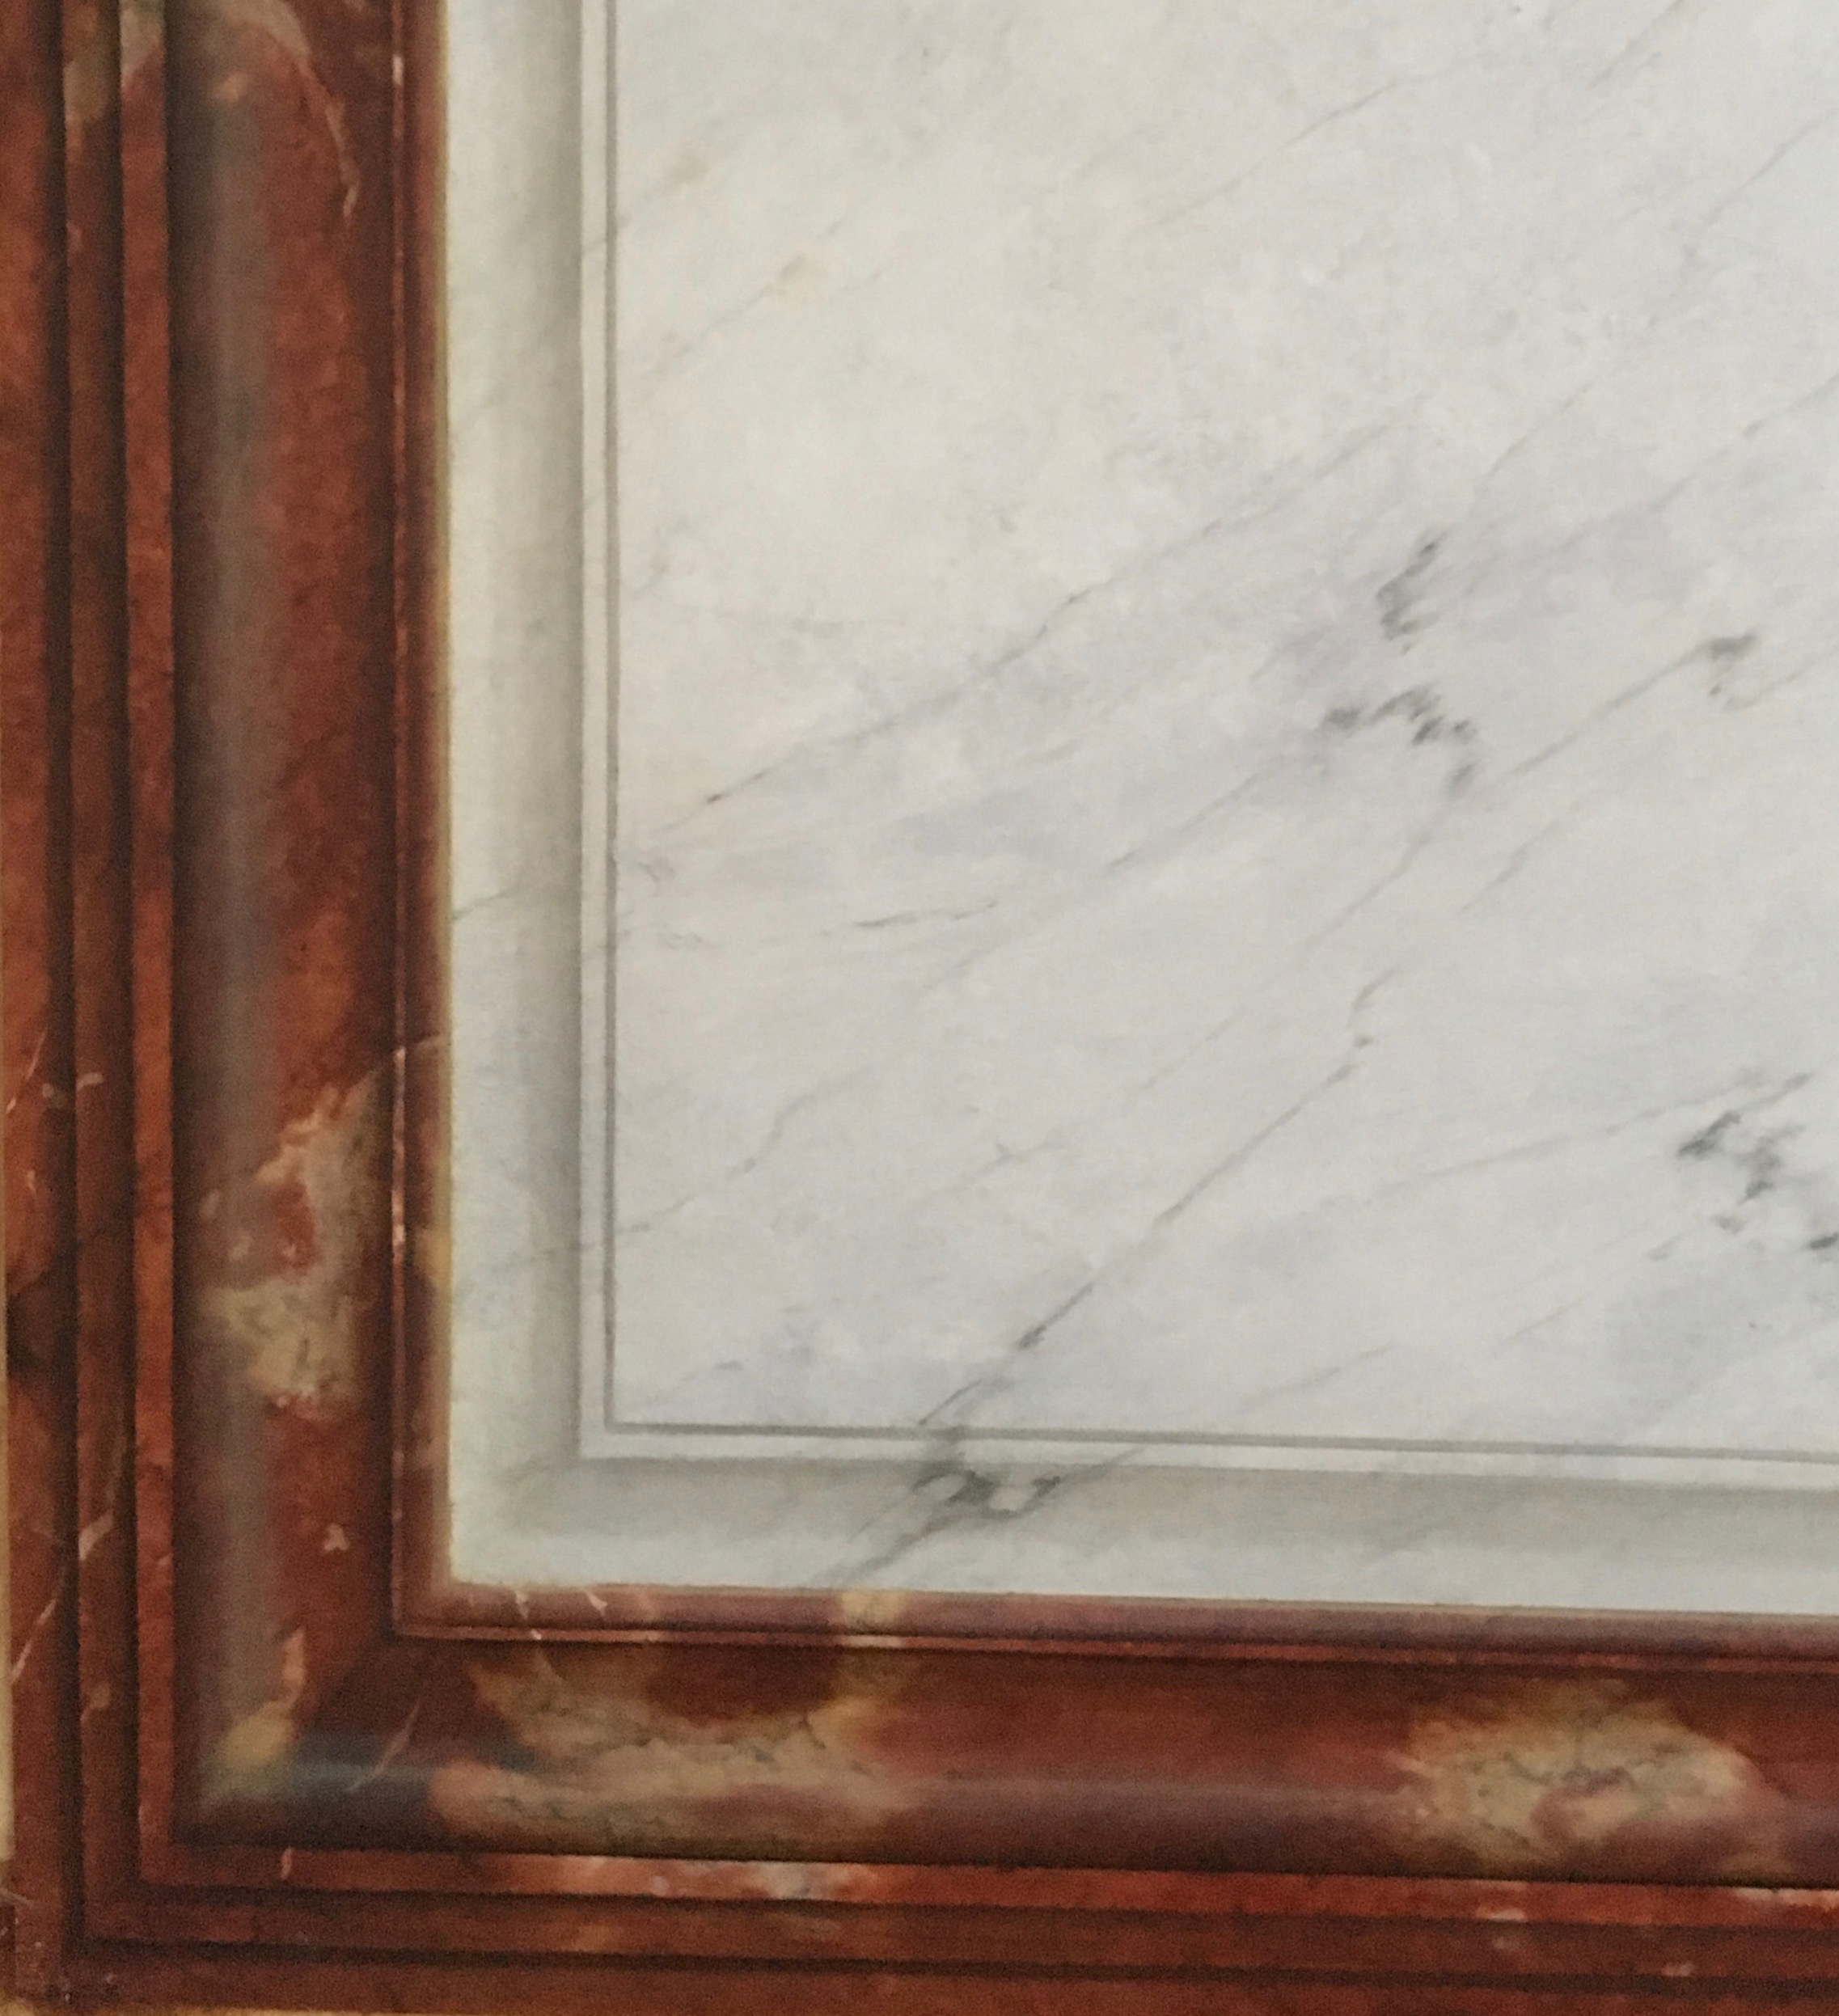 imitation marbles 'white veined' and 'red languedoc' with false moldings